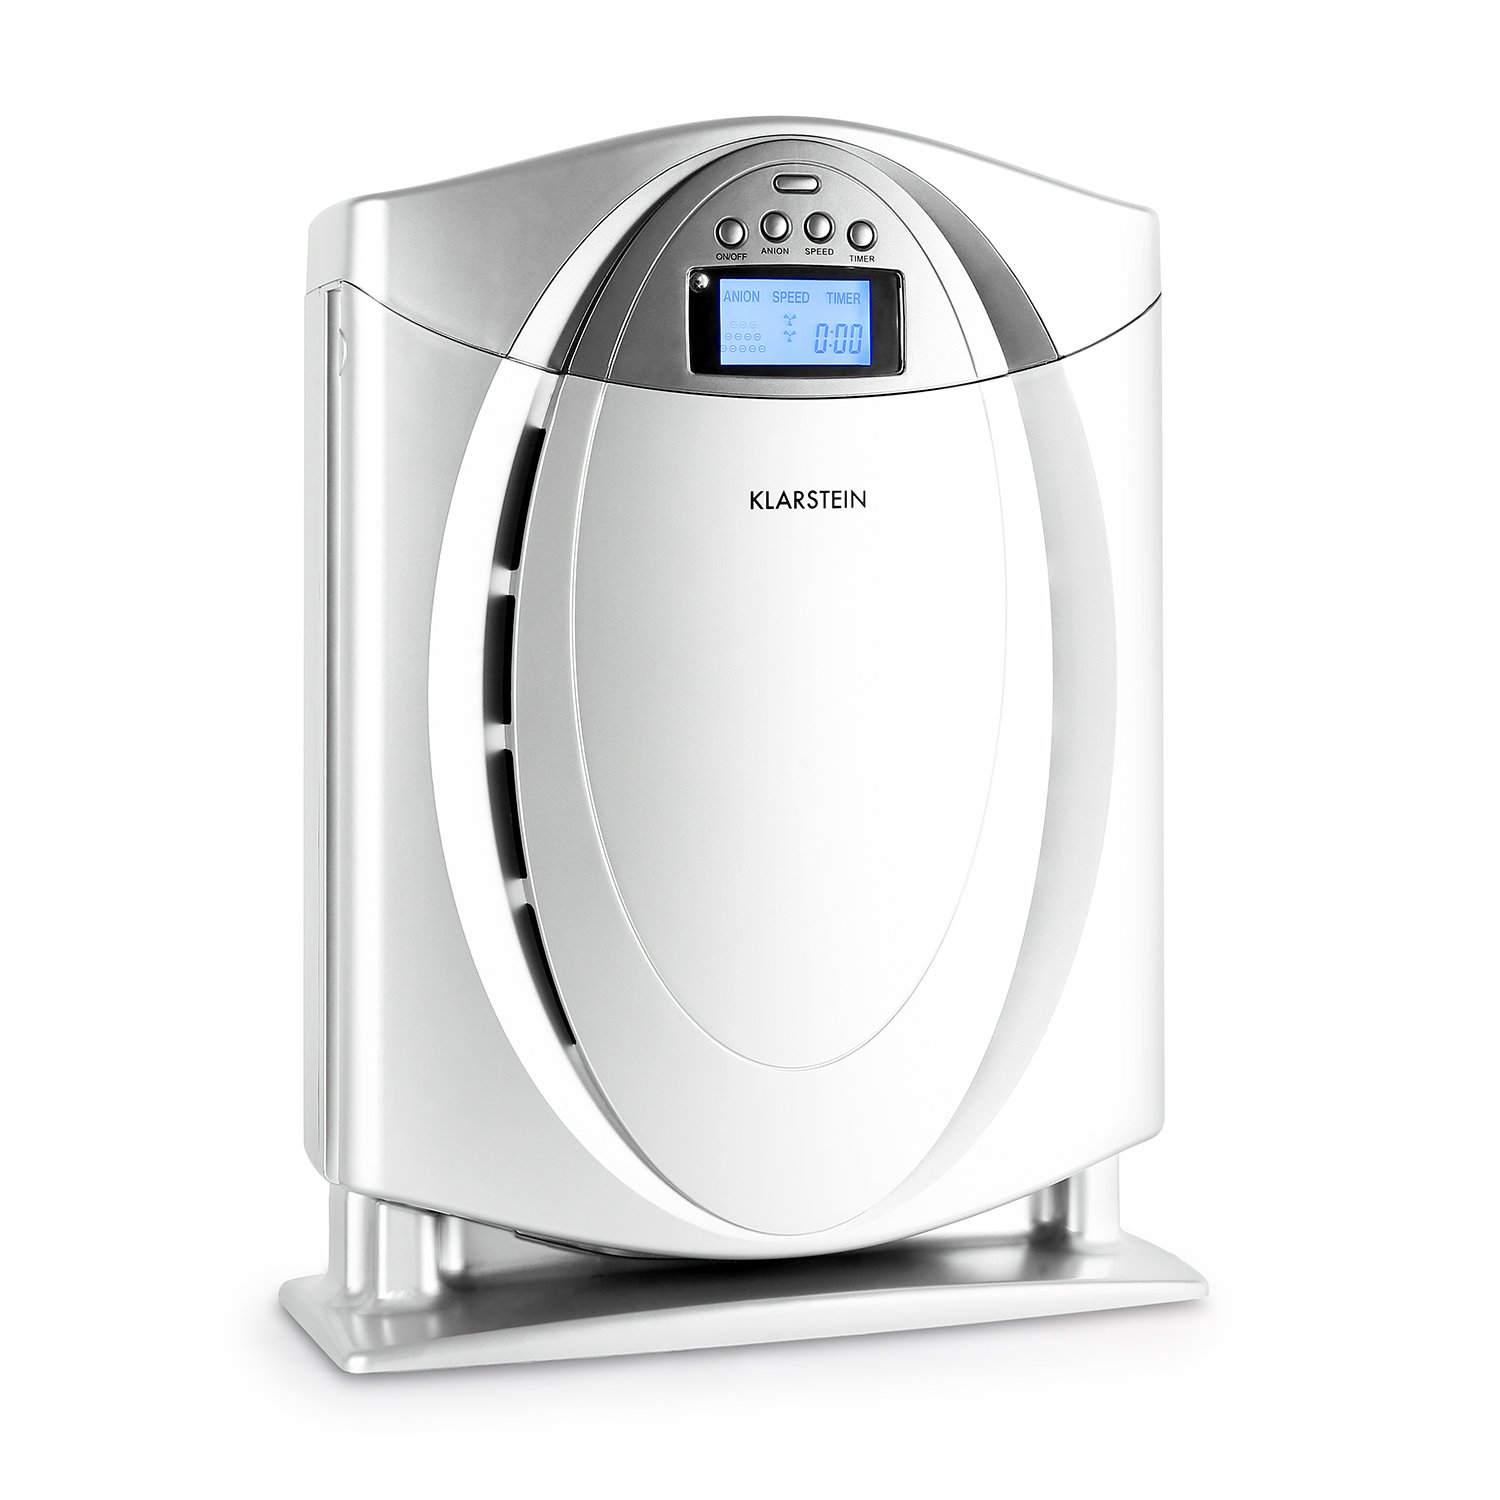 KLARSTEIN Grenoble 4-in-1 Air Purifier with HEPA Filter Switchable Ionizer Allergen, Odors, Smoke, Dust Remover Quiet Operation LCD Display Memory function Silver